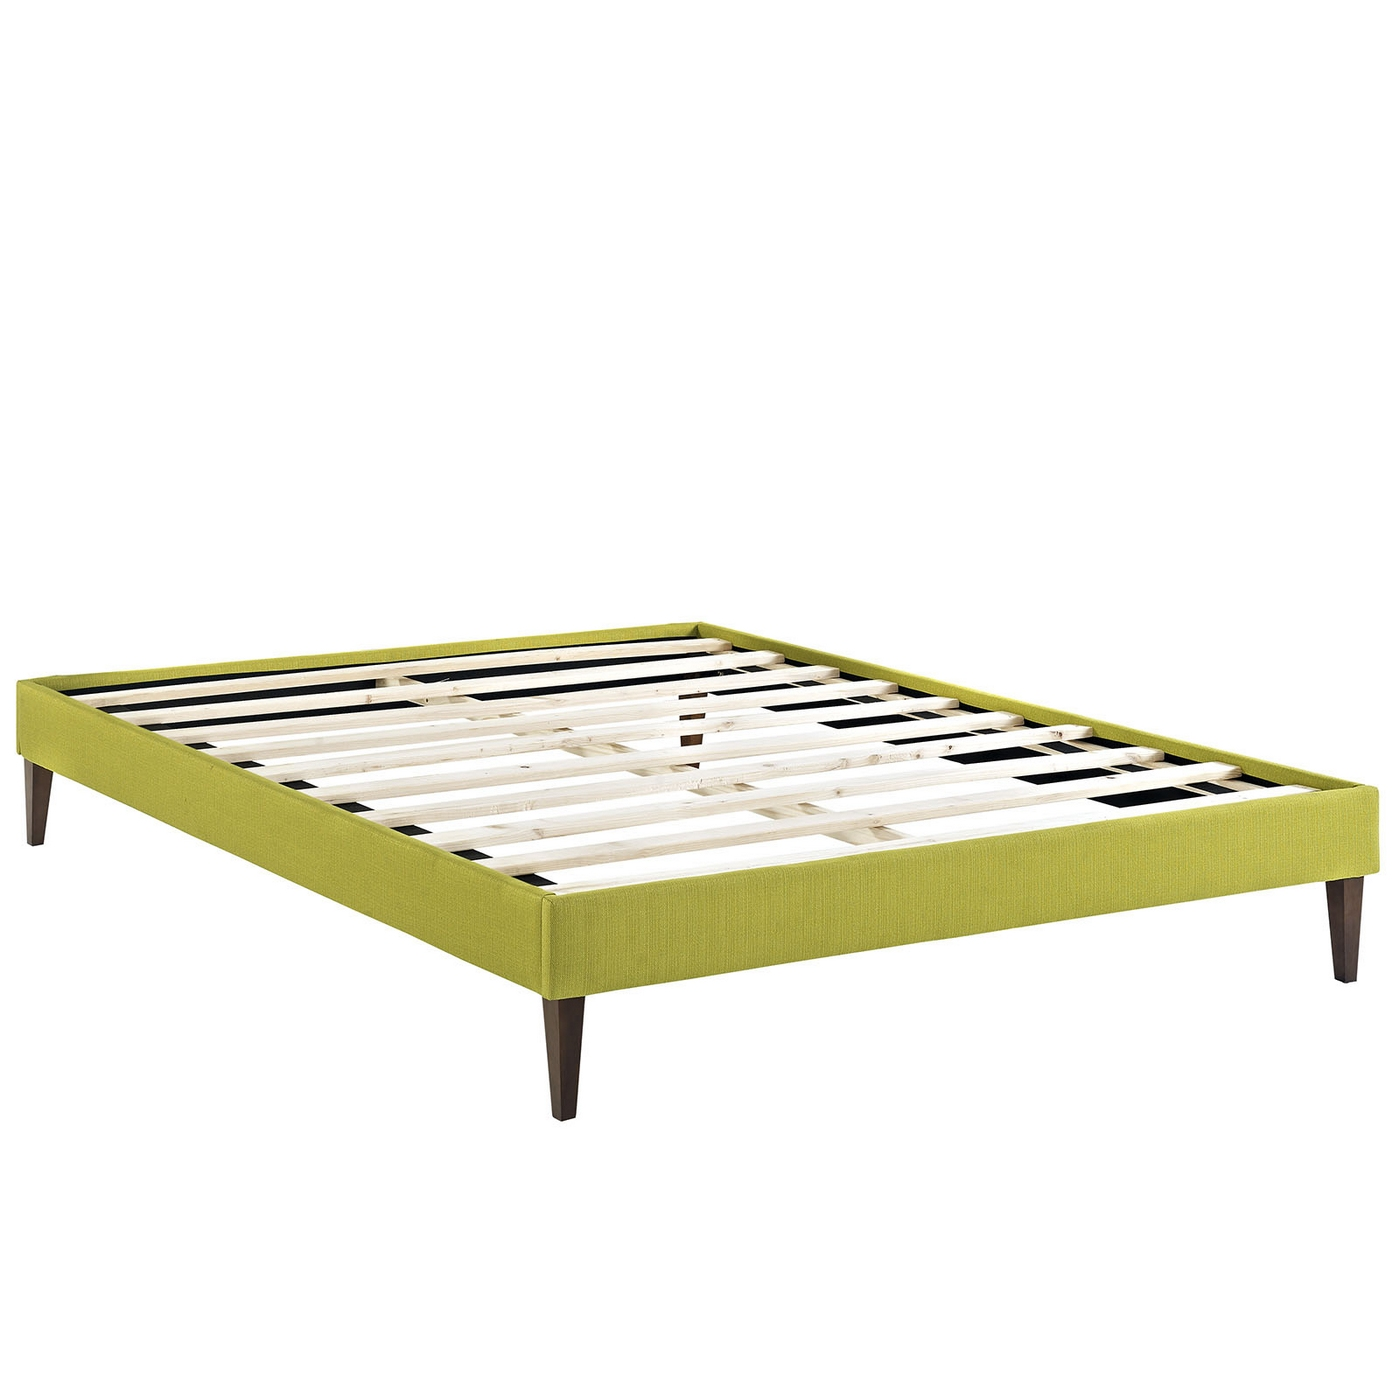 sharon modern king fabric platform bed frame with square legs